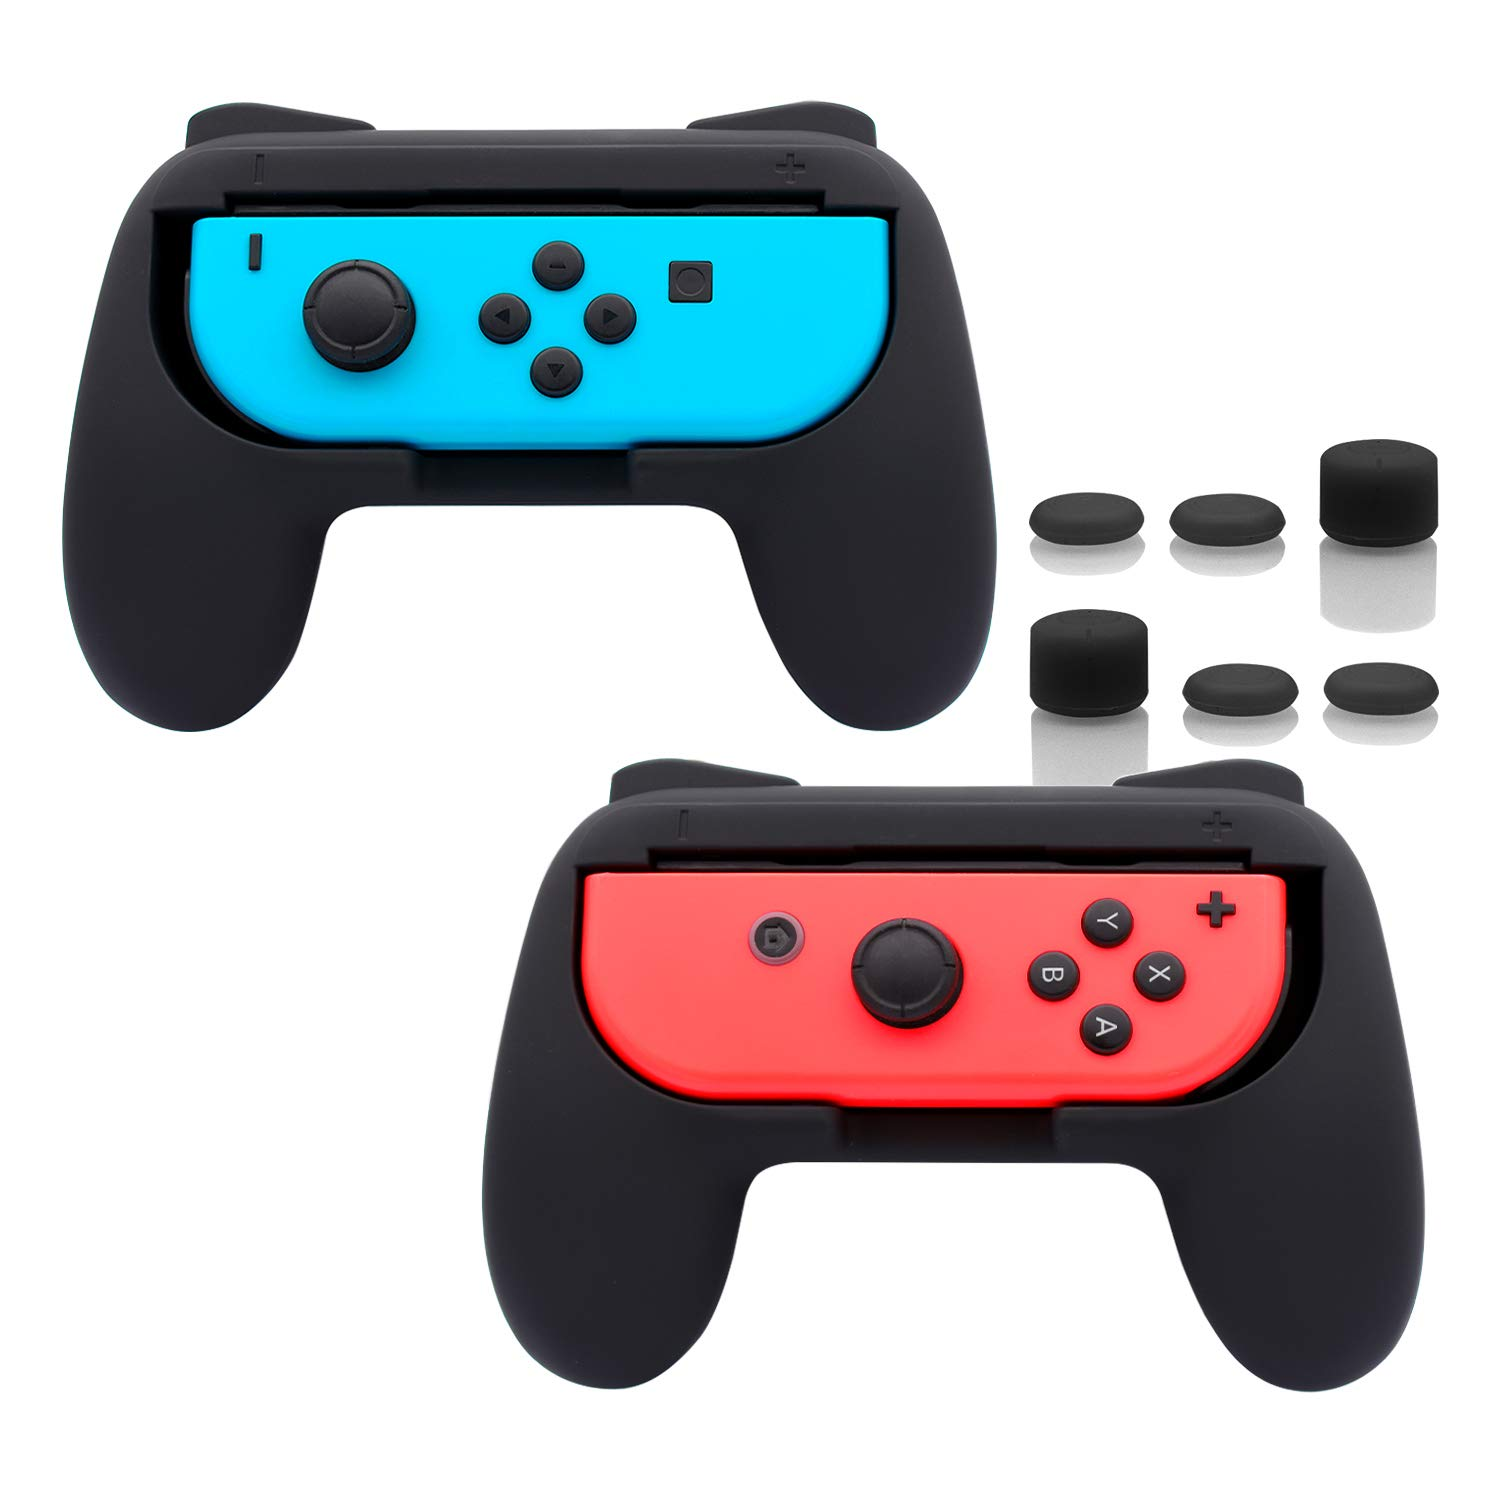 FASTSNAIL Grips Compatible with Nintendo Switch for Joy Con & OLED Model for Joycon, Wear-Resistant Handle Kit Compatible with Joy Cons Controllers, 2 Pack(Black)